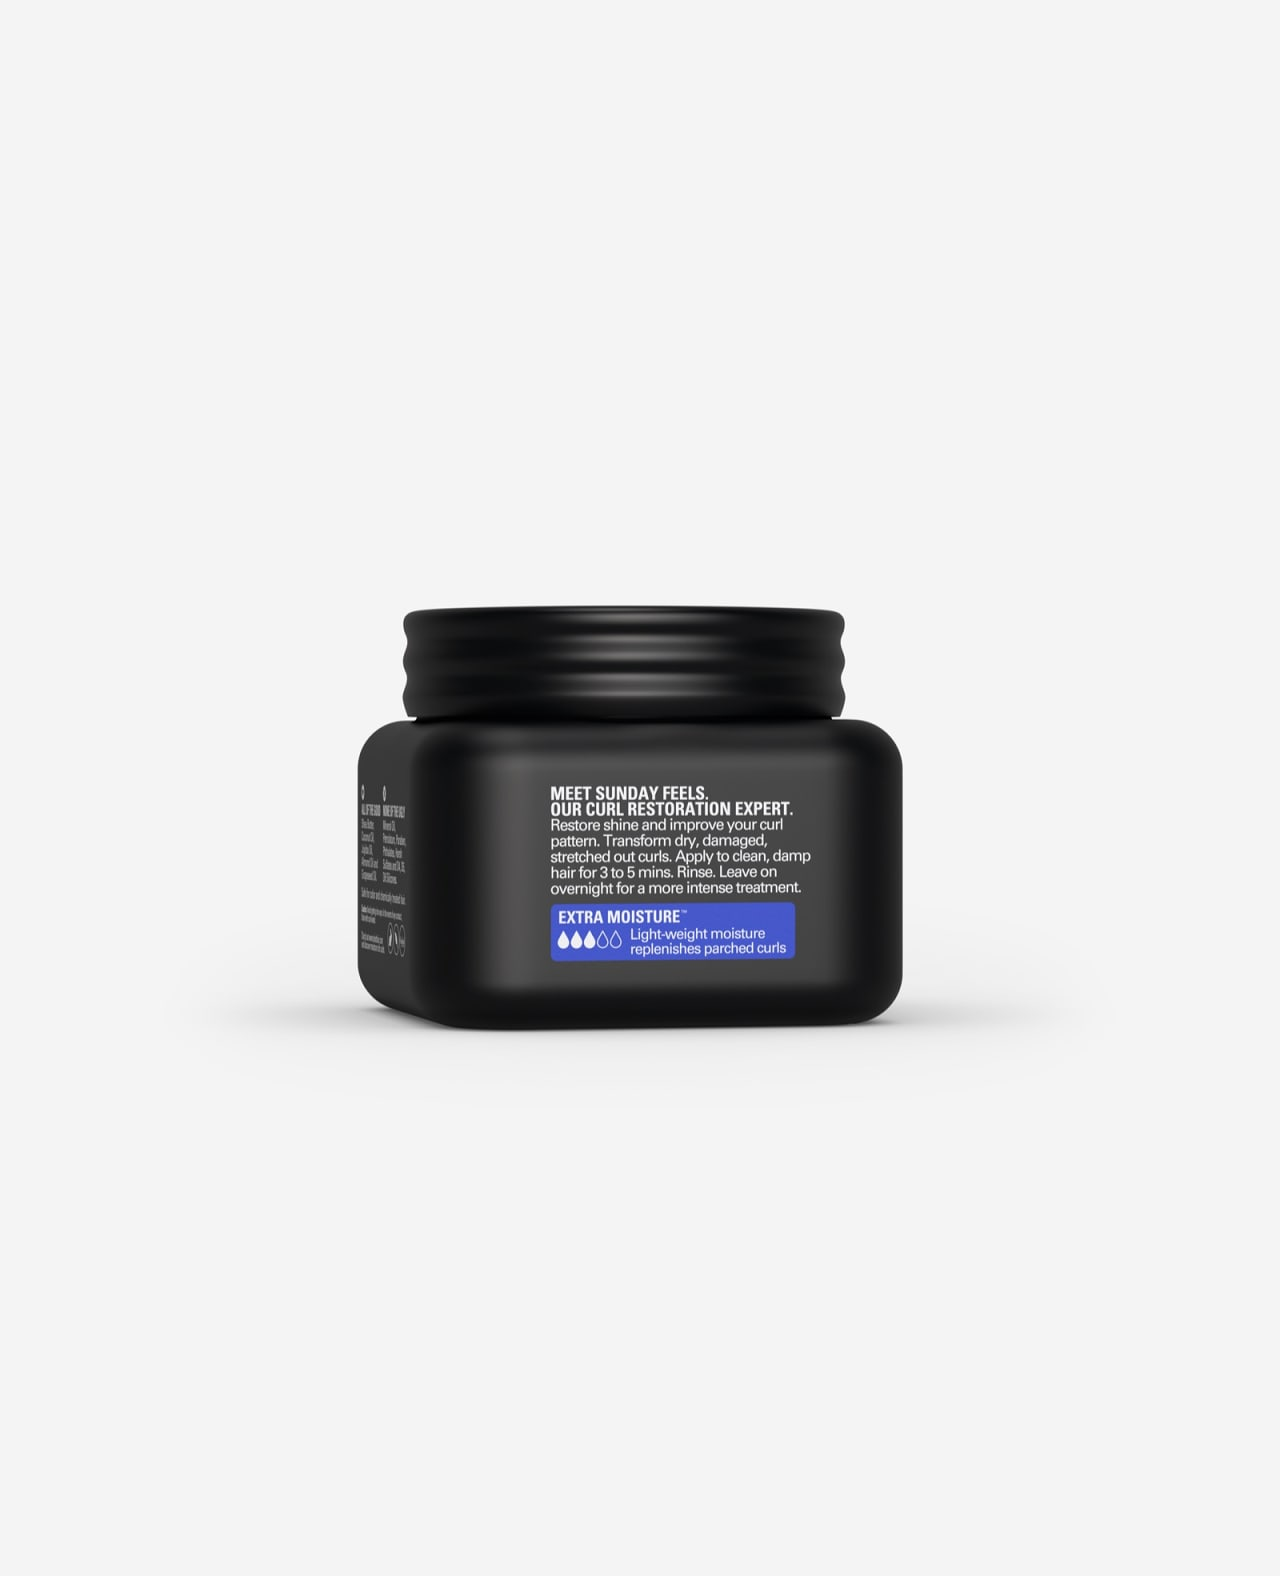 Twist Sunday Feels Deeply Hydrating Hair Mask Extra Moisture for Curls 8.5 oz. description side of container